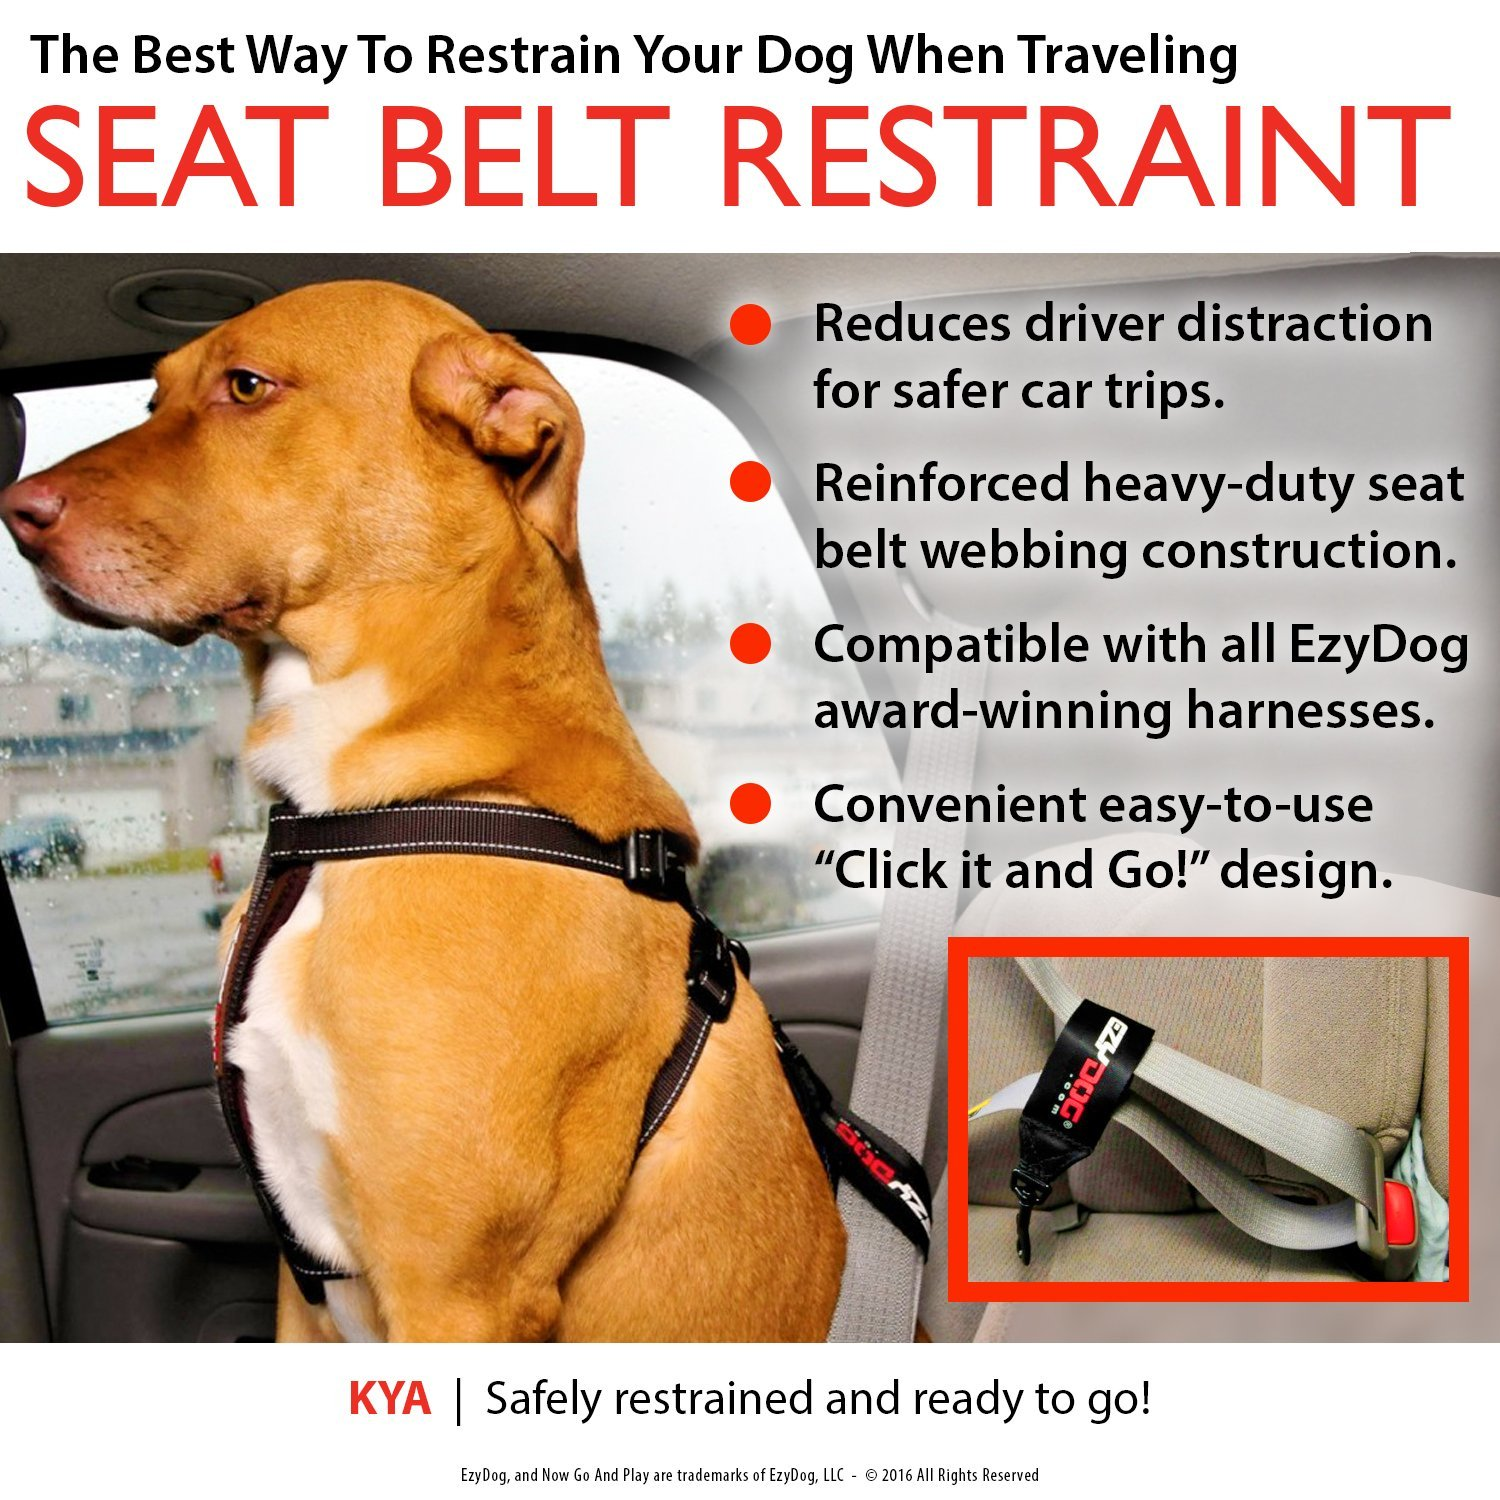 Dog Seat Belt Harness >> Universal Dog Car Restraint Seat Belt Pet Safety Lead Vehicle Seatbelt Harness Attachment Made From Nylon Fabric Simple Click It And Go Design